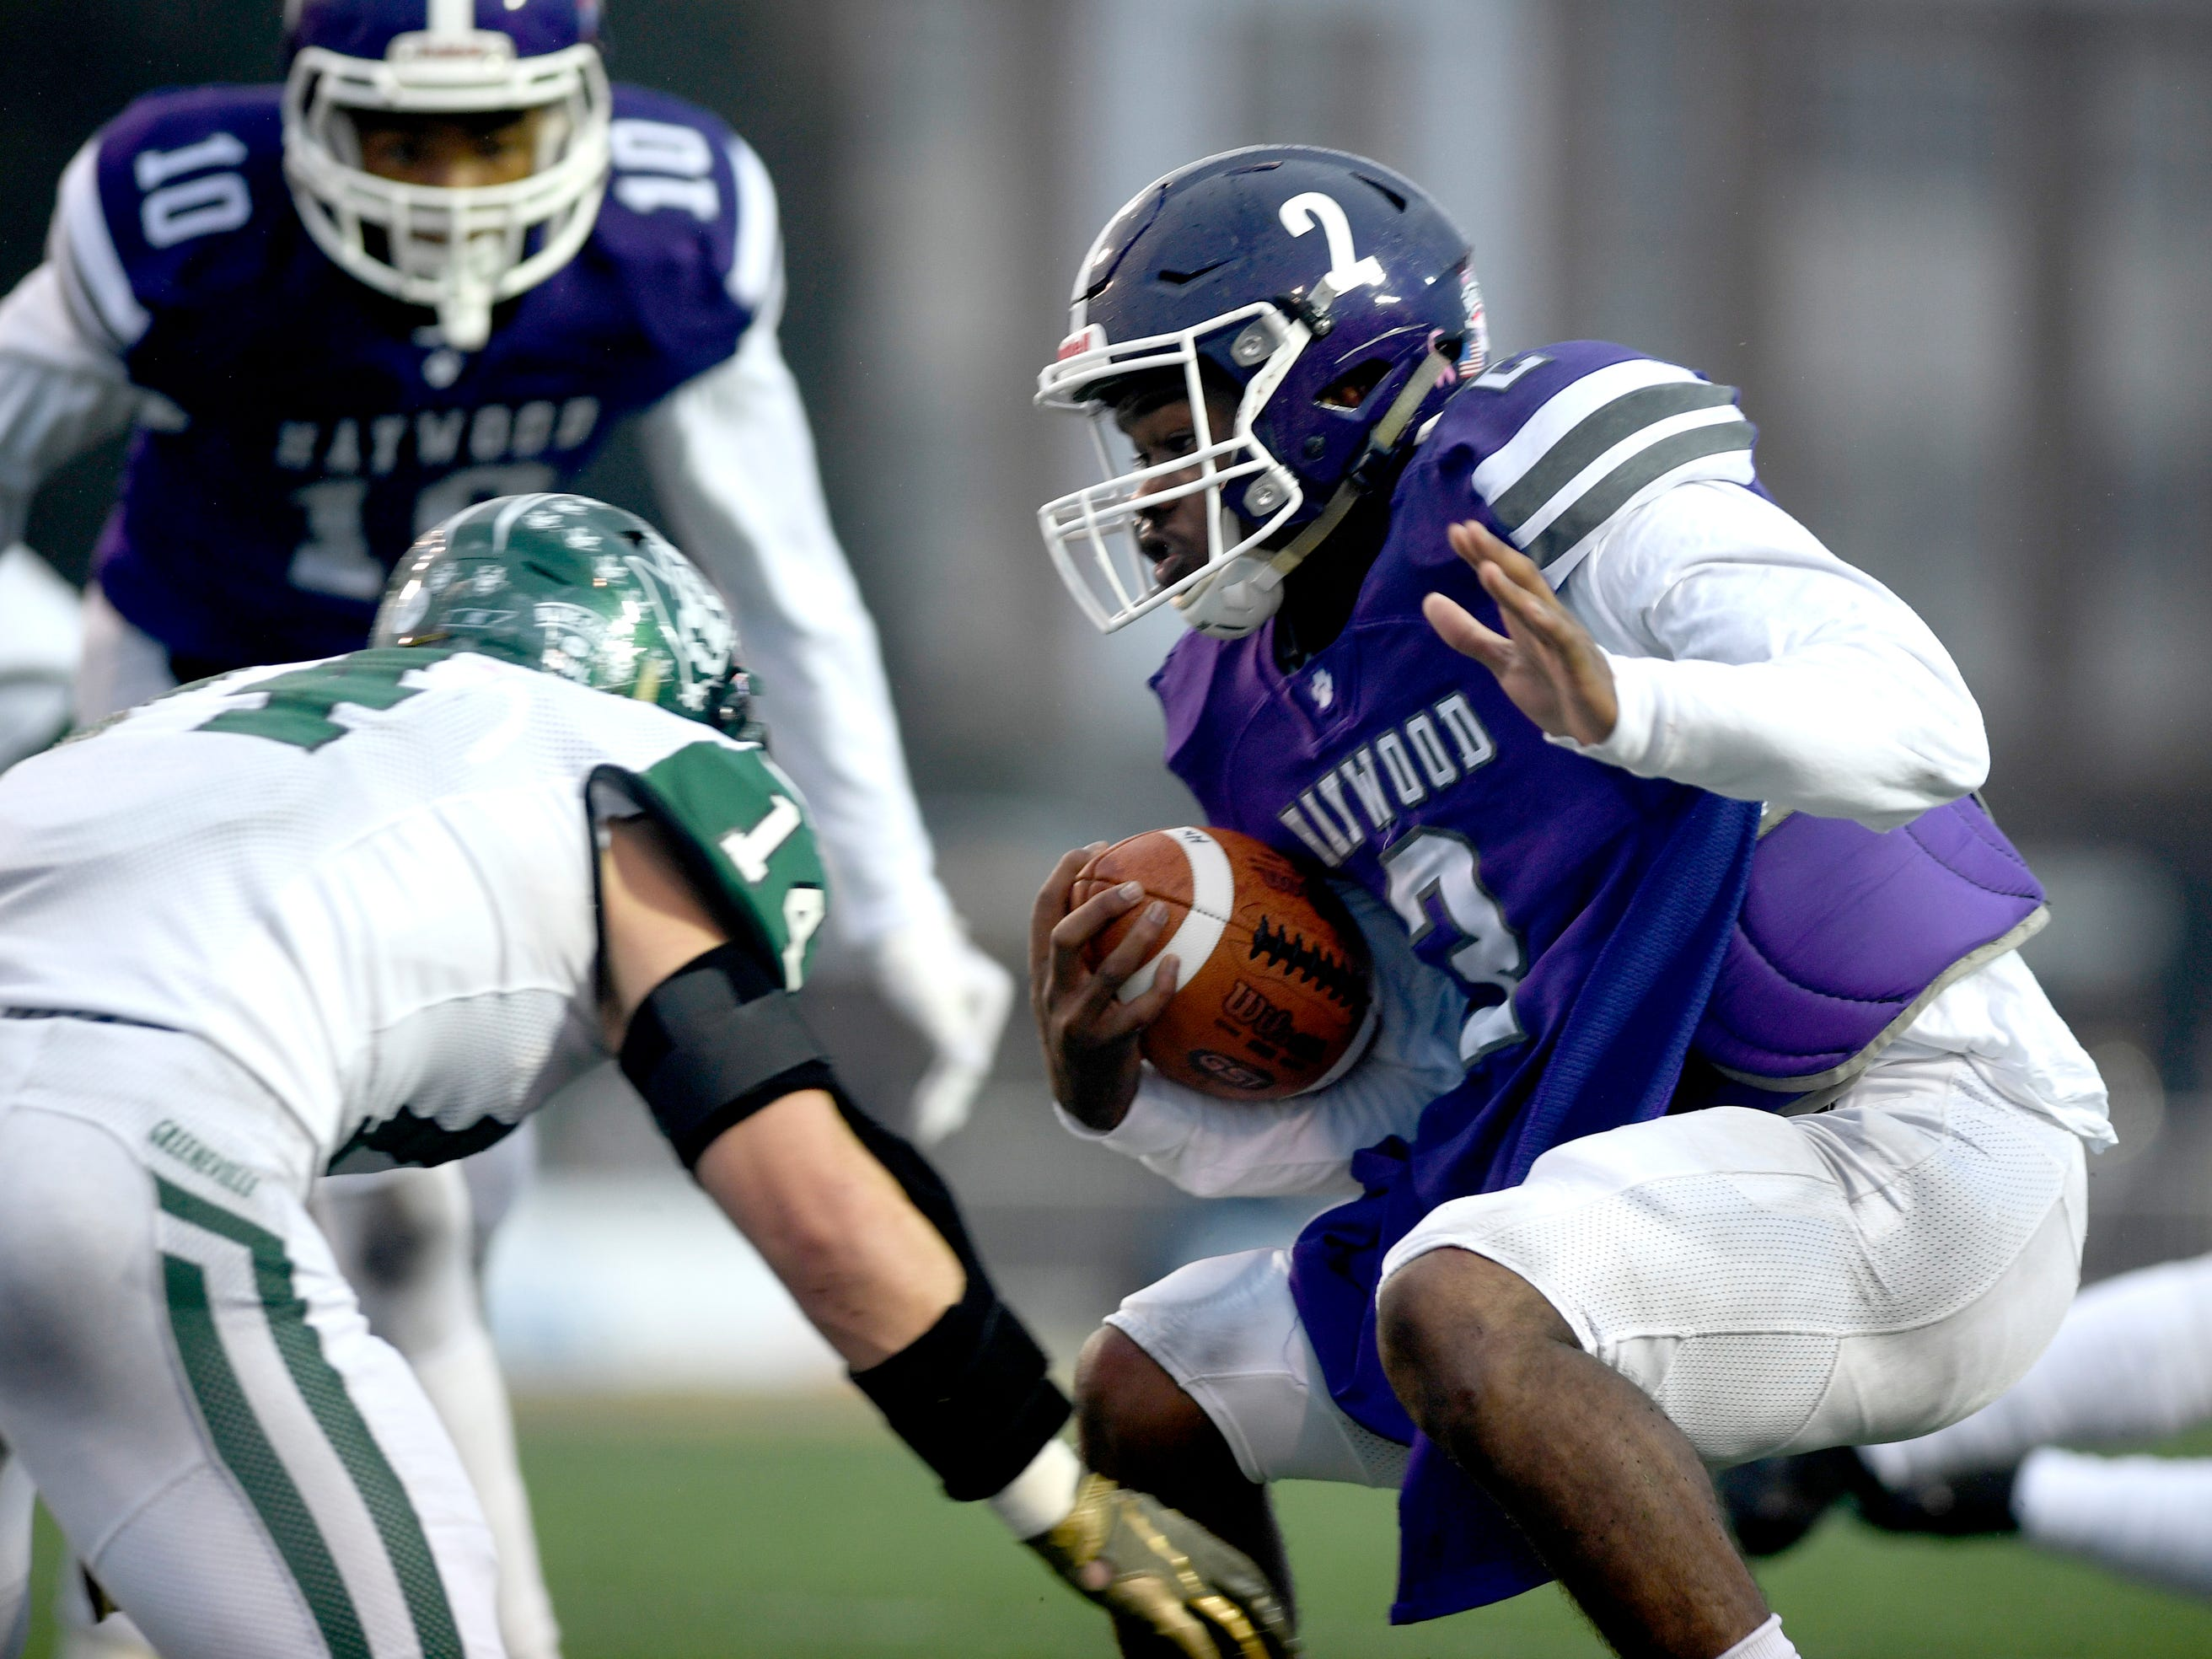 Haywood's  Deyondrius Hines (2) runs the ball as Greeneville's Dalton McLain (14) moves in for a tackle during the Class 4A BlueCross Bowl state championship Thursday, Nov. 29, 2018, at Tennessee Tech's Tucker Stadium in Cookeville, Tenn.